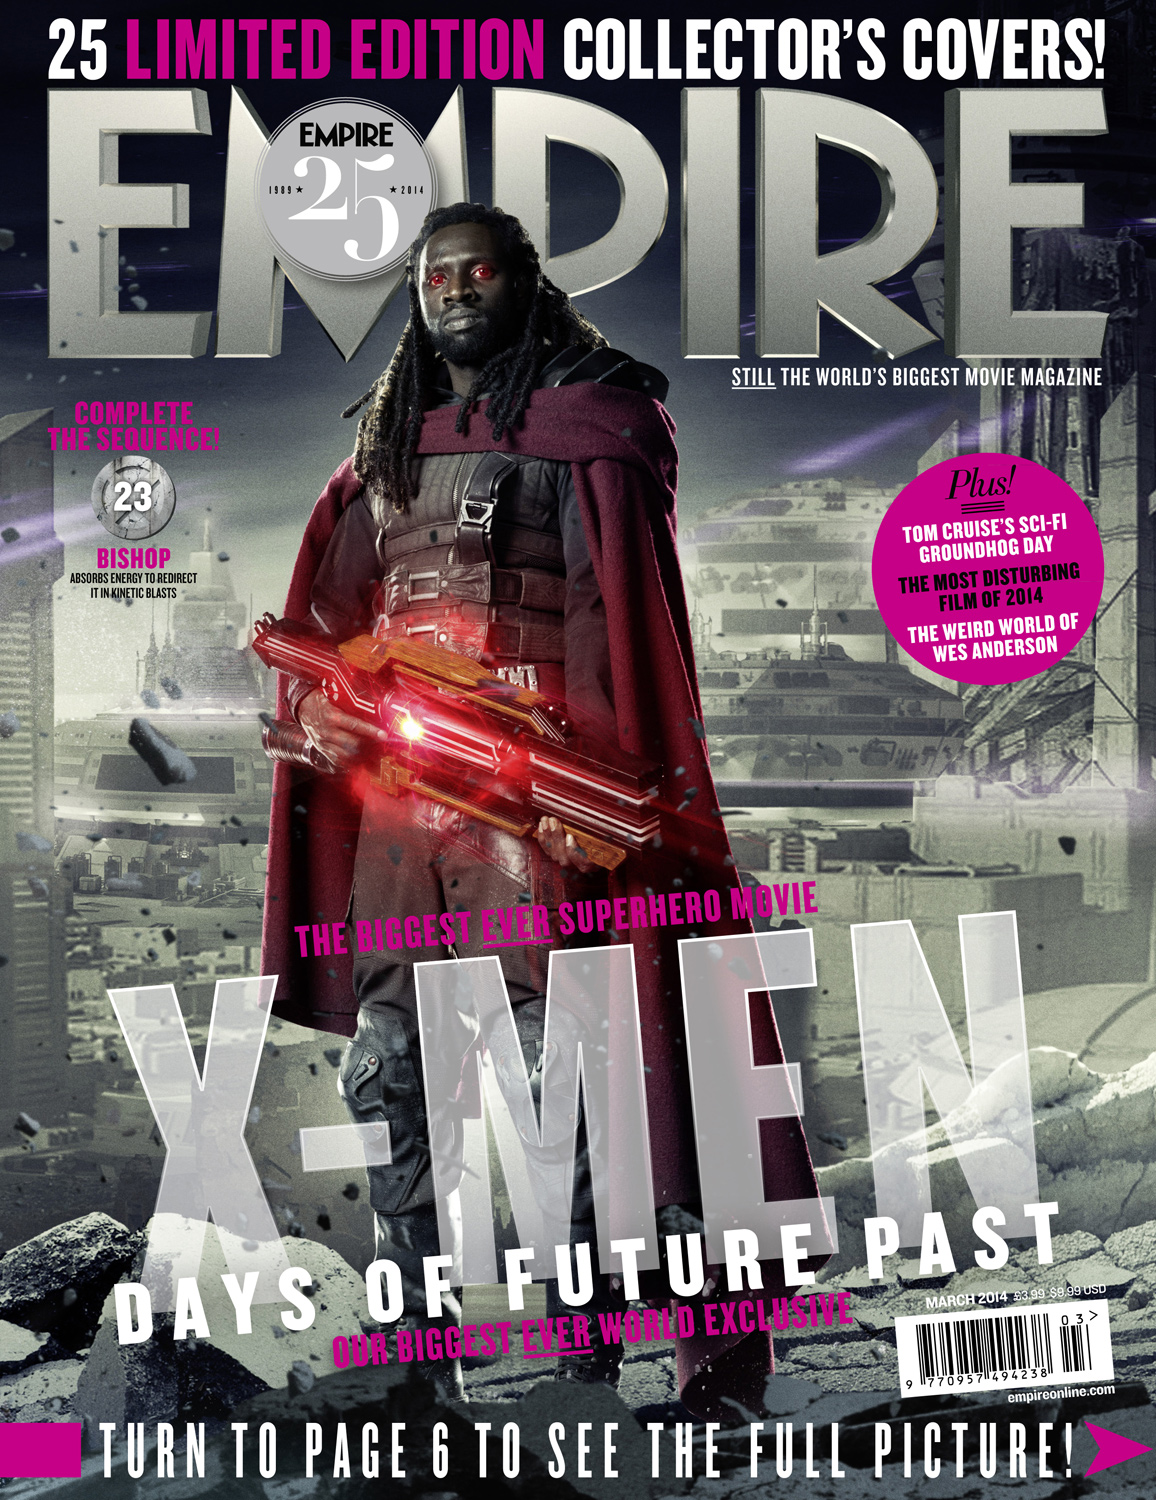 laugana entertainment magneto that x-men with first will about sequel kinberg able character past what hell film those xavier characters future really have still says full-on youll james evan comic mcavoy charles days stewart franchise place director focus more origin even general beast ultimately becomes villain side class being exciting vaughn lehnsherr